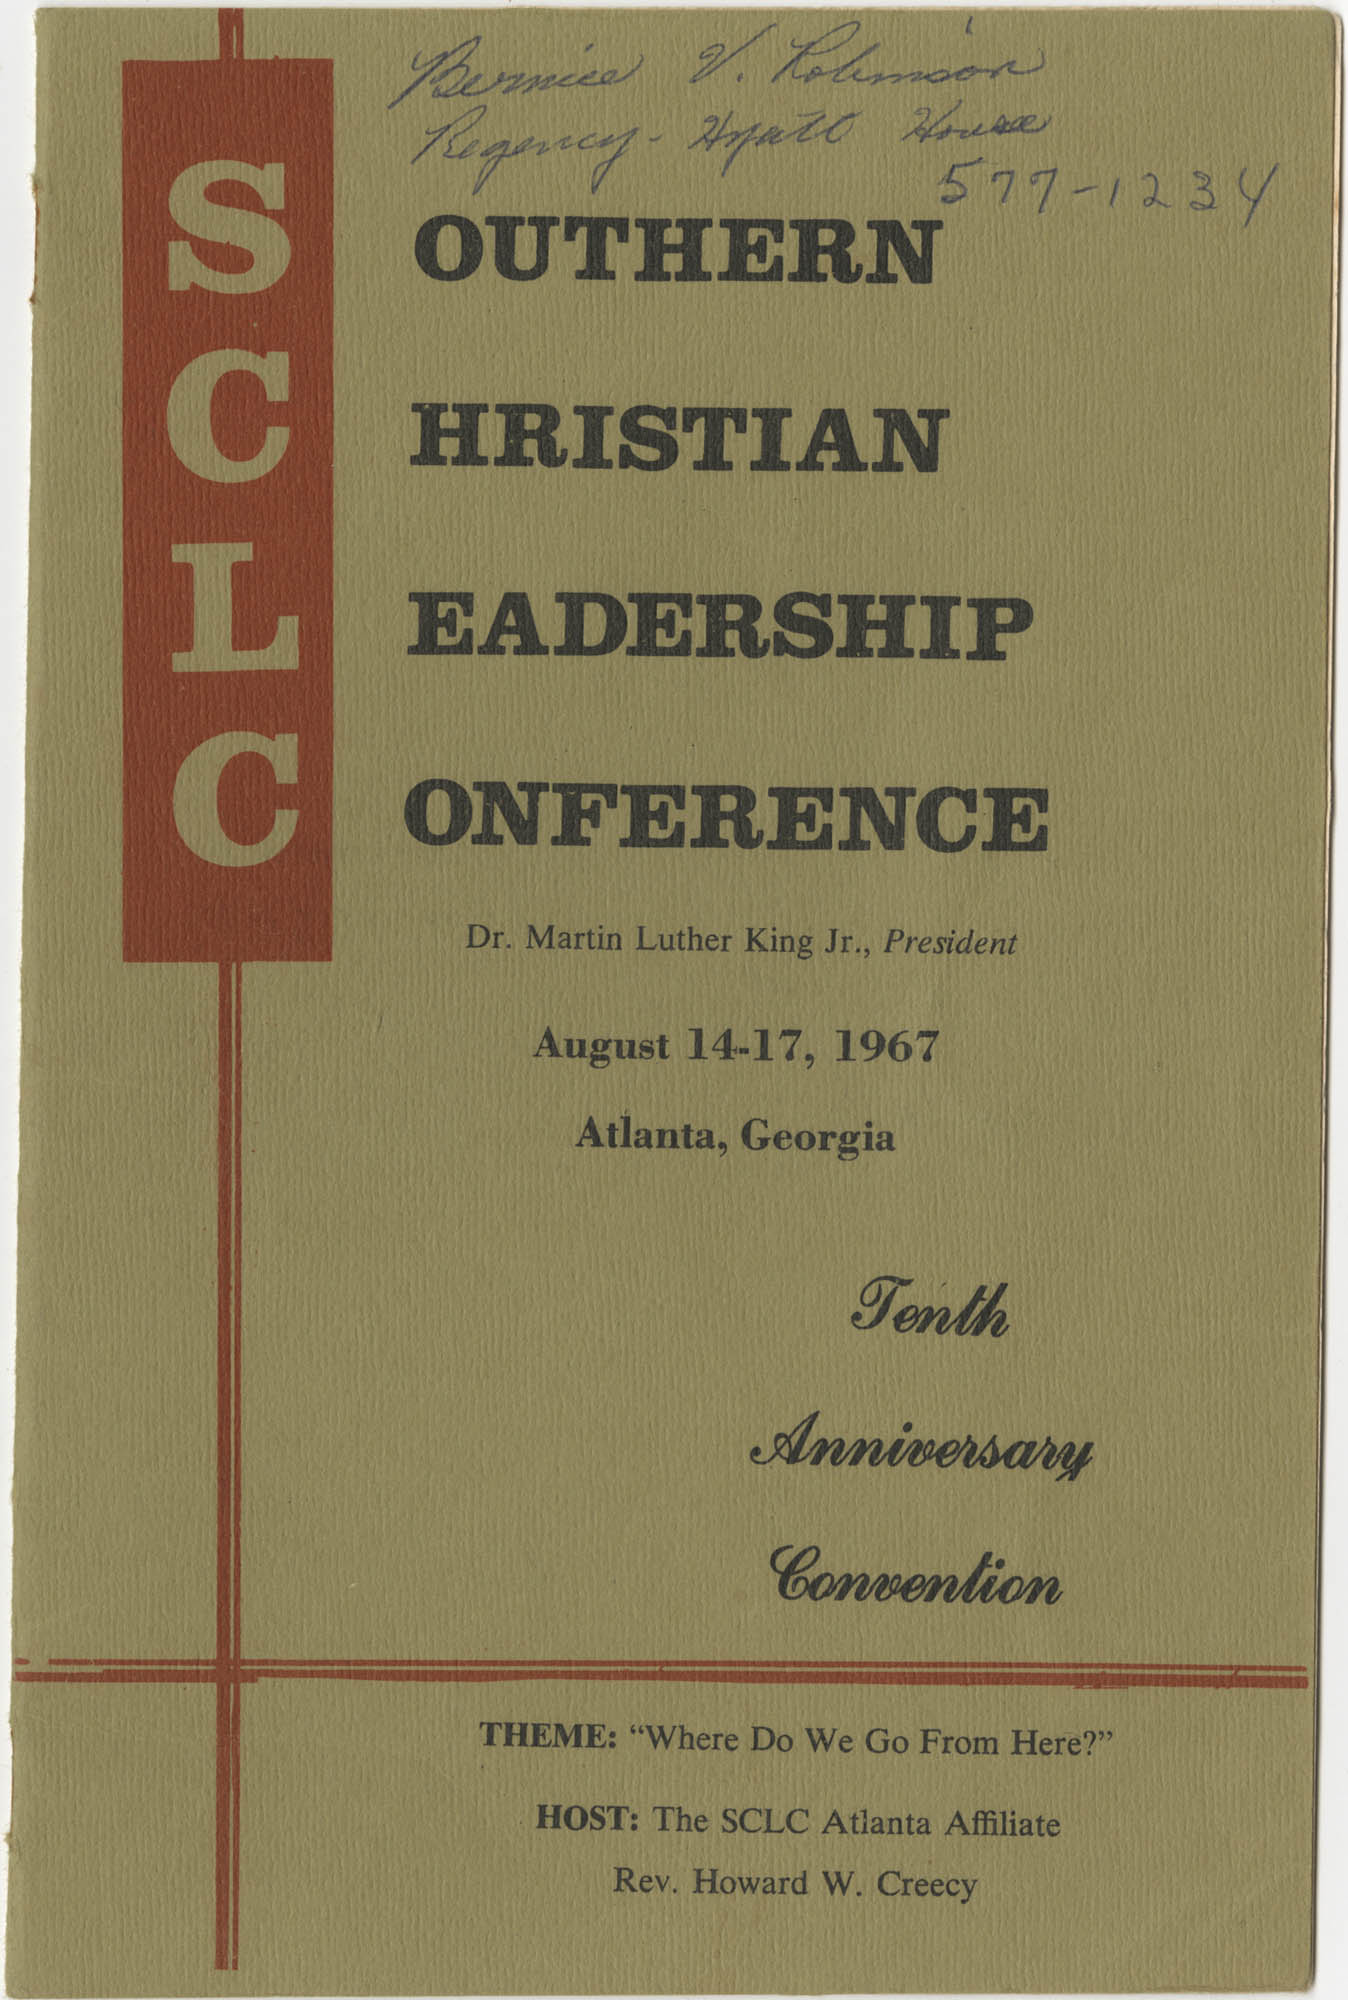 Southern Christian Leadership Conference, Tenth Anniversary Convention Program